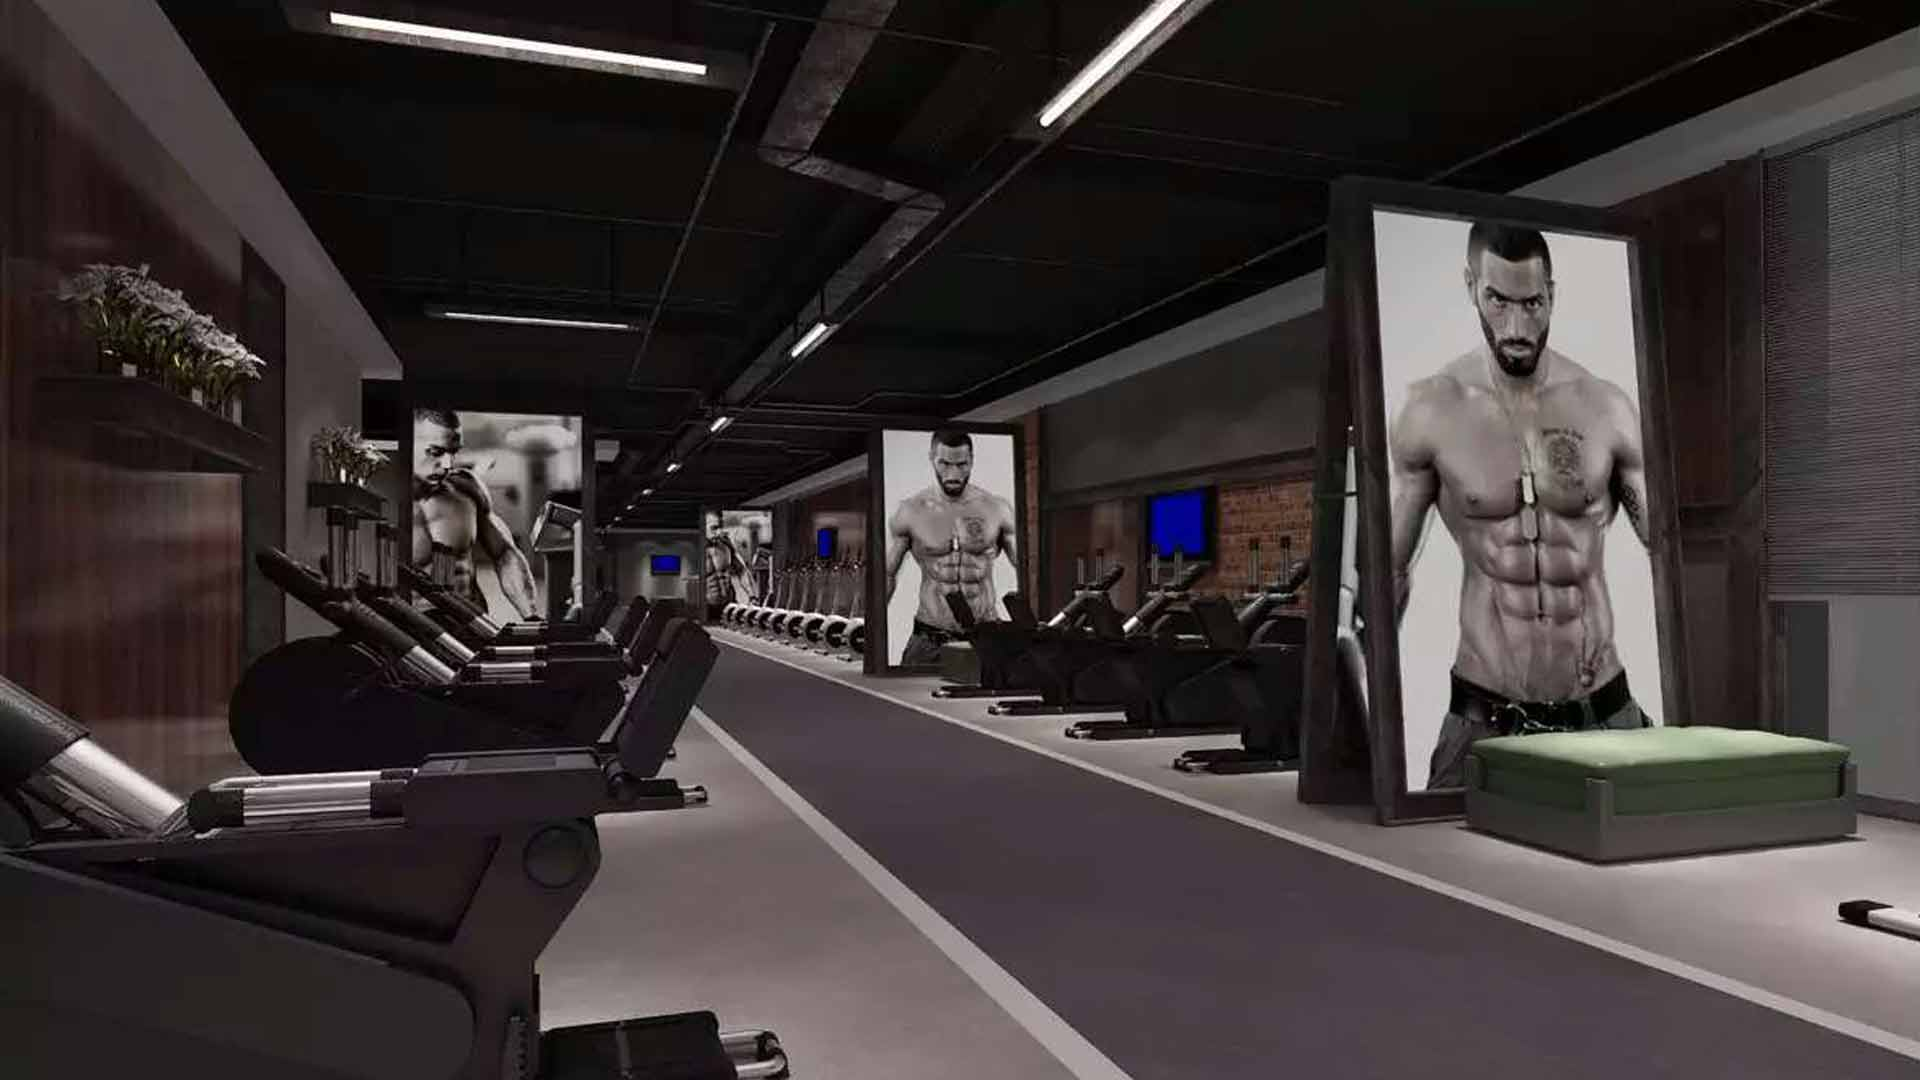 dhz-superport-fitness-center-china3